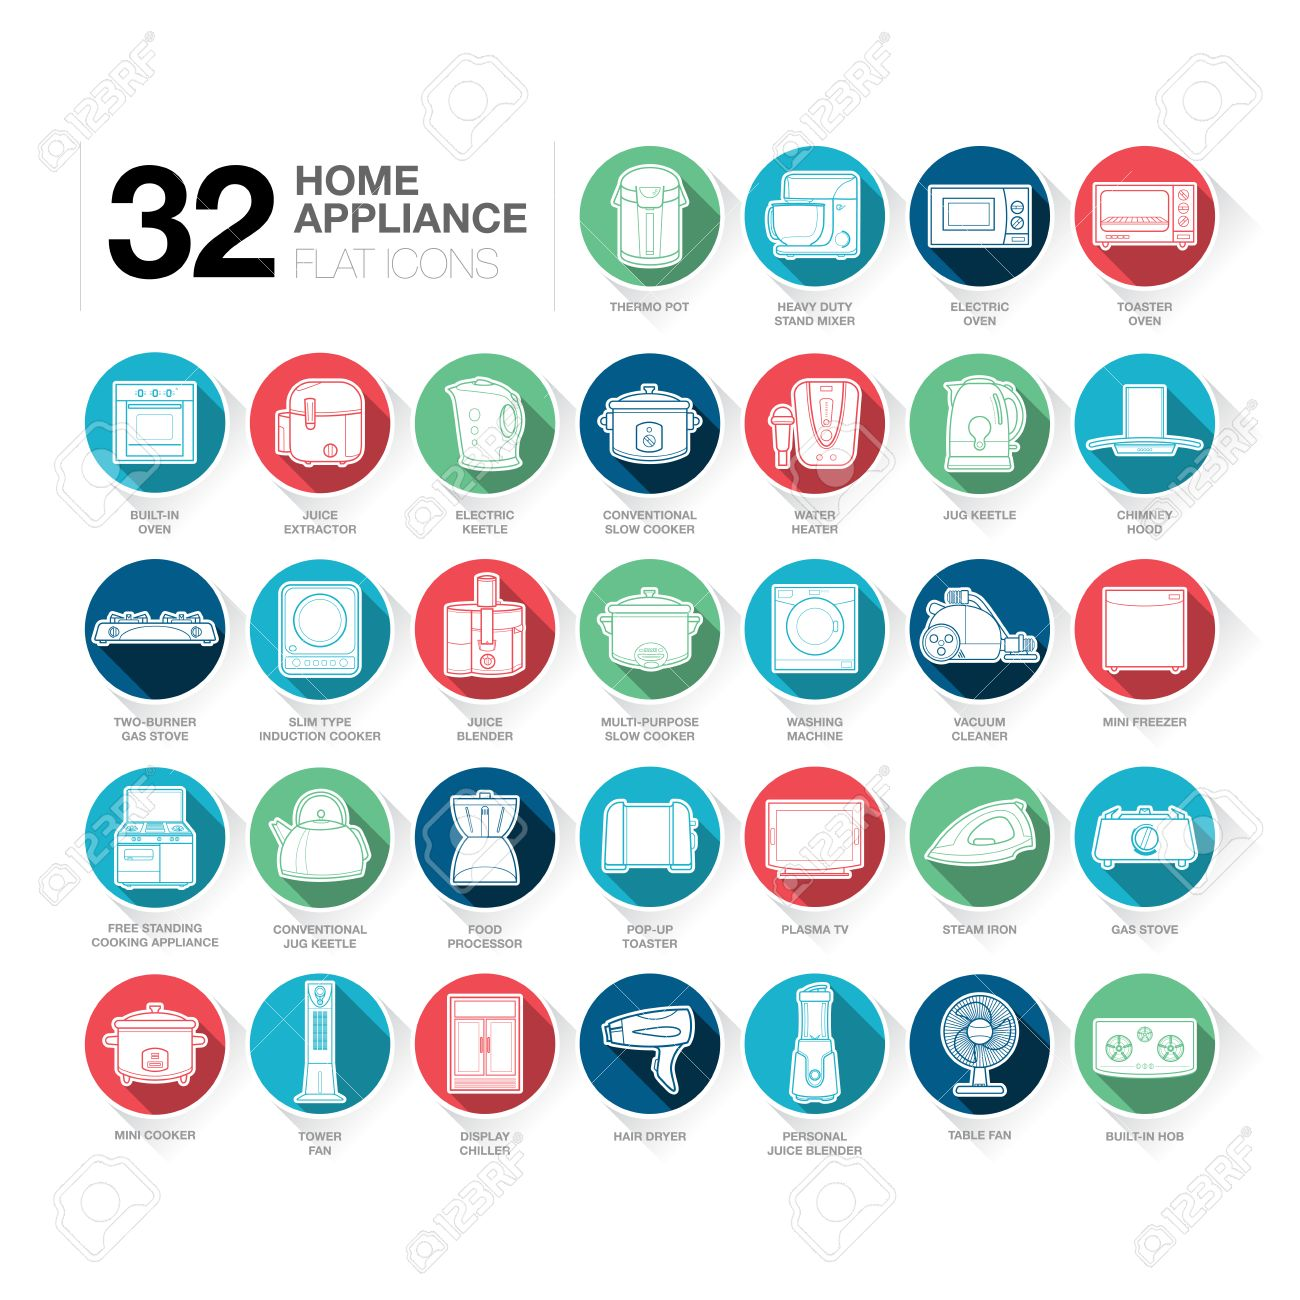 A Set Of Home Appliance Icons Including Kitchen Appliances, Small ...